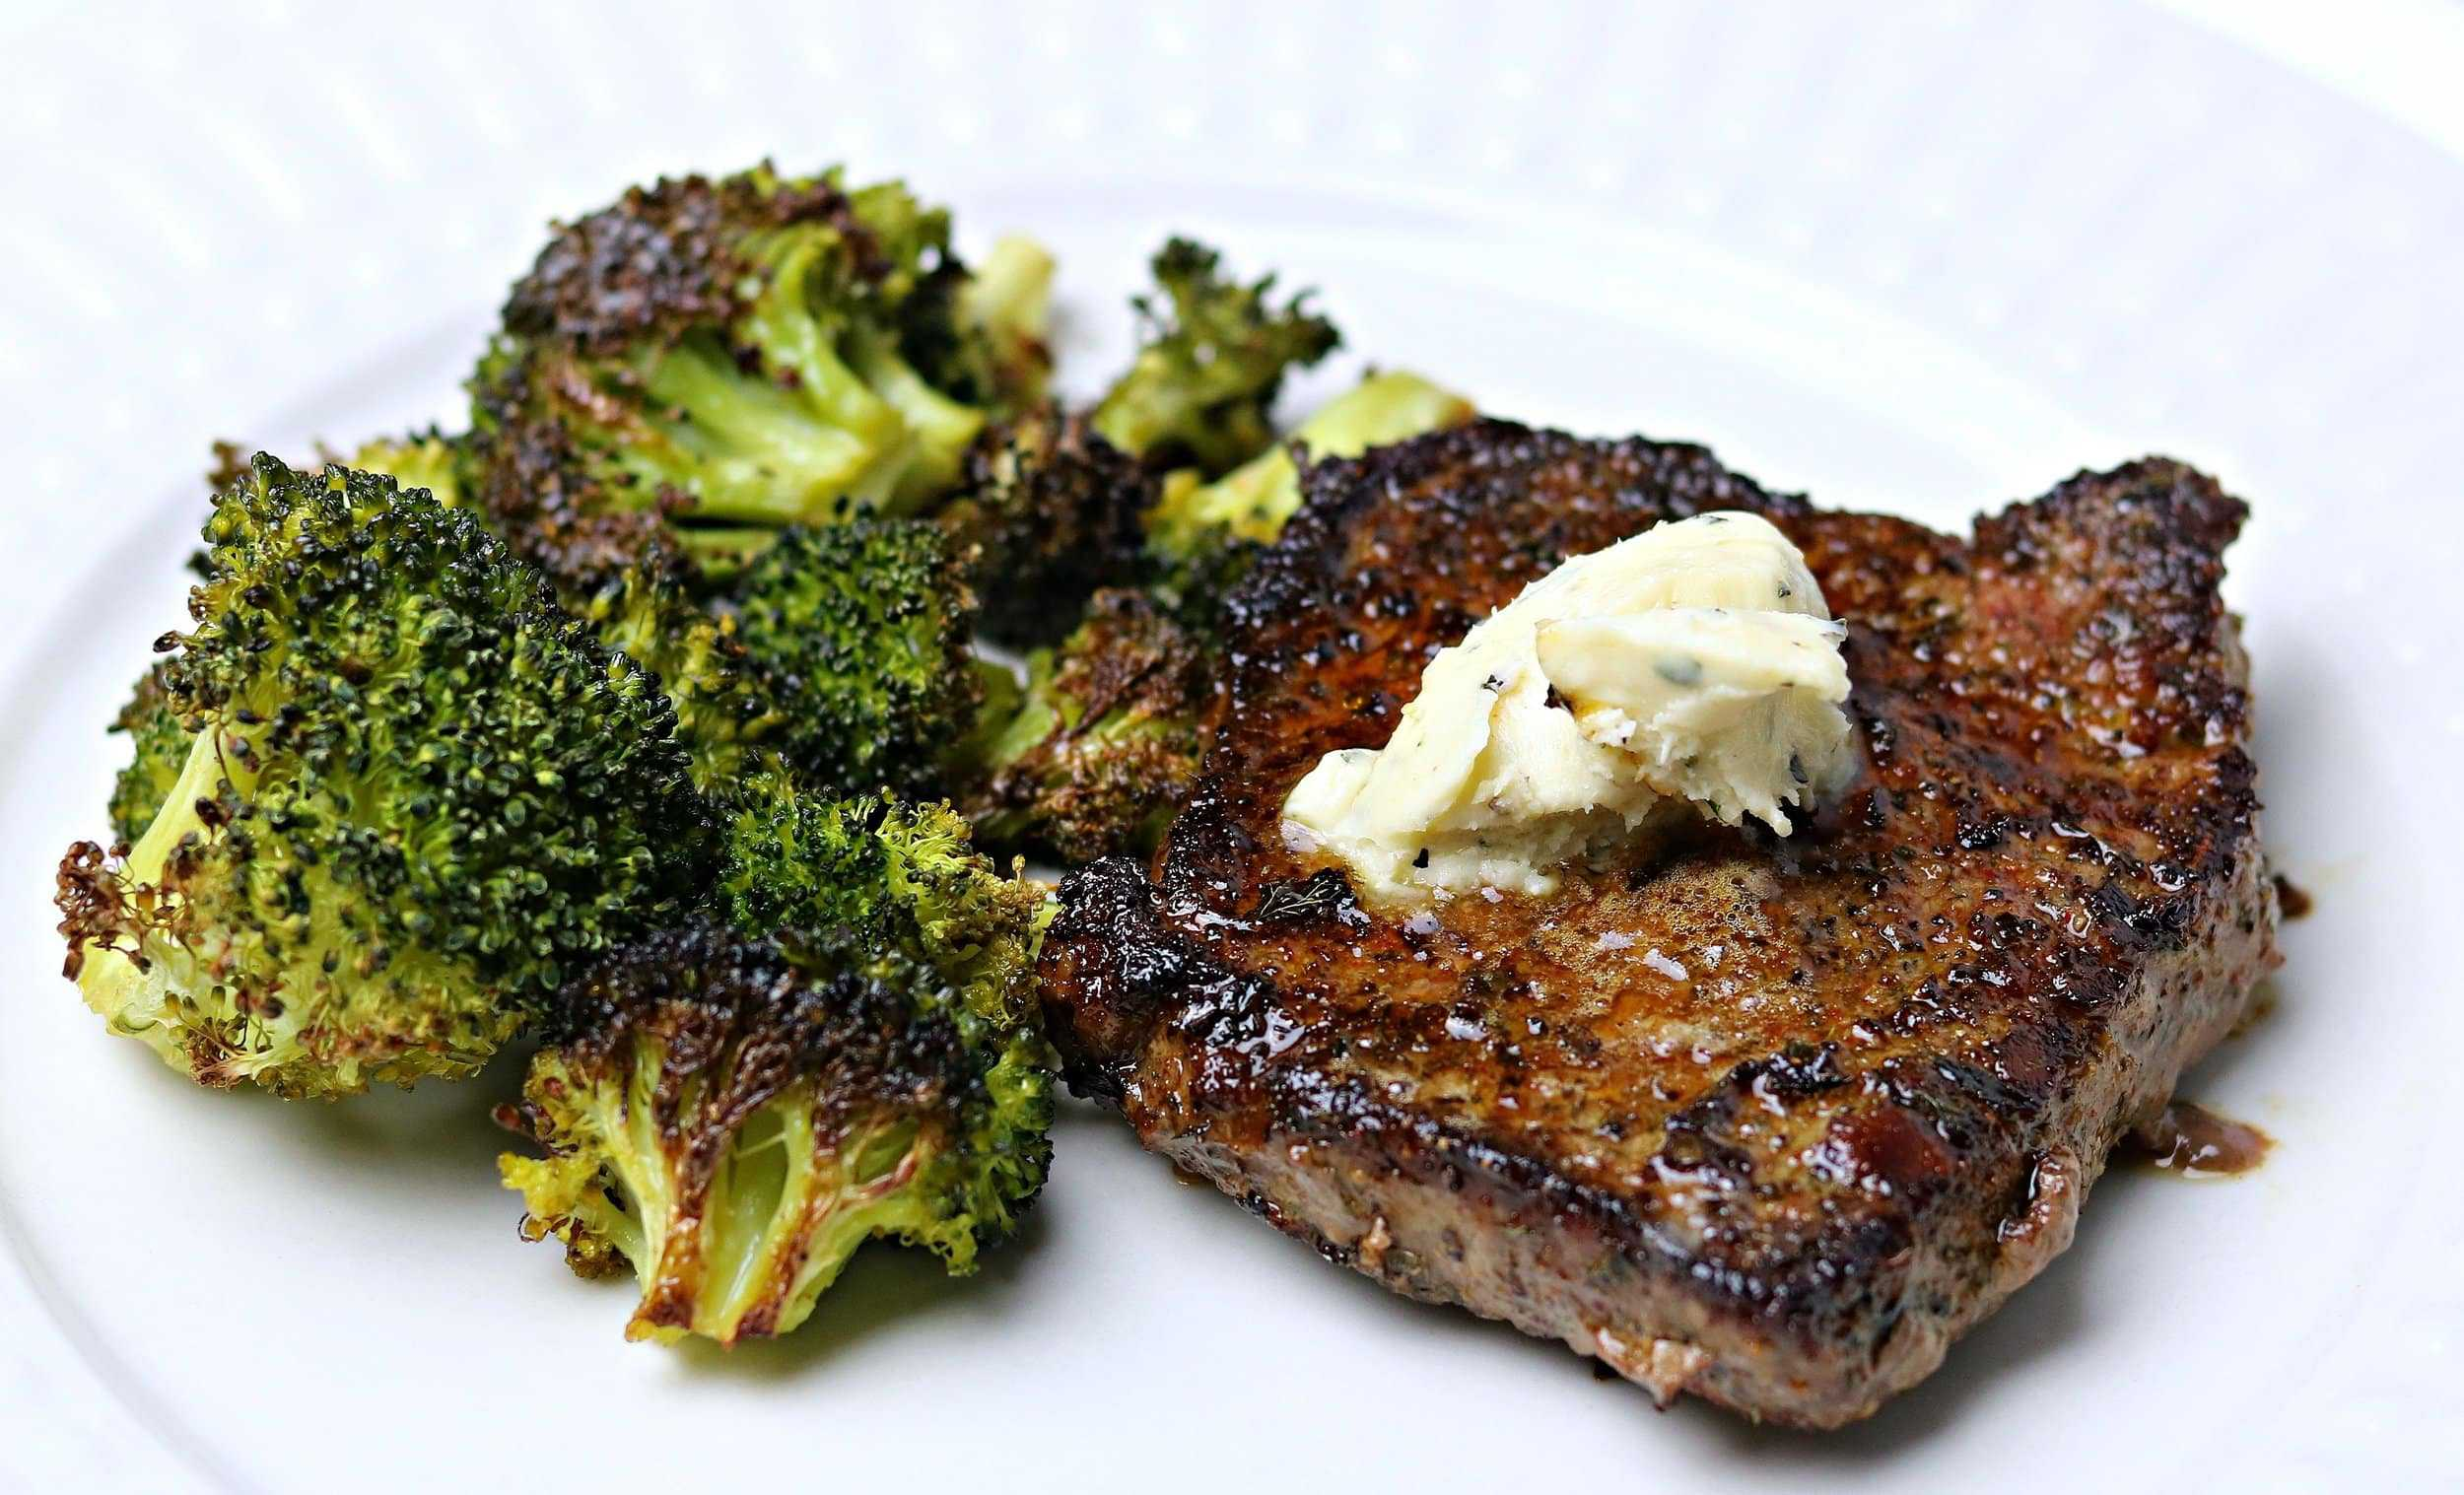 a close-up of beef sirloin steak on a plate with roasted broccoli and compound butter.